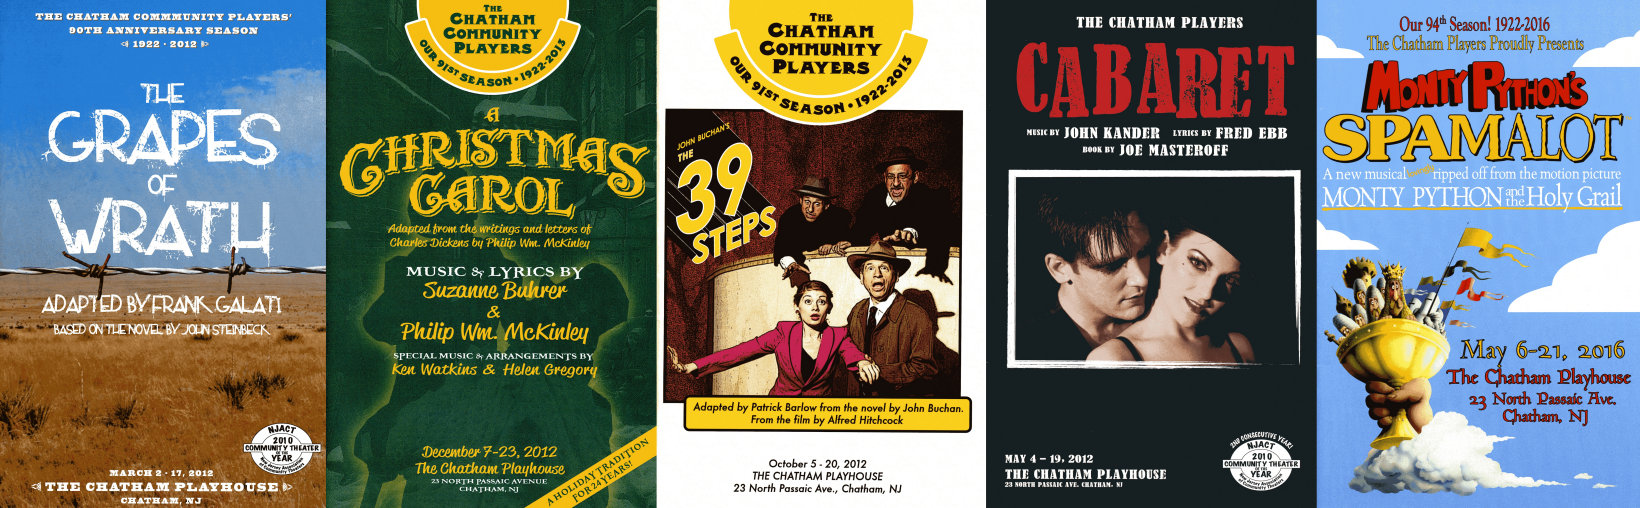 Chatham Players Past Productions